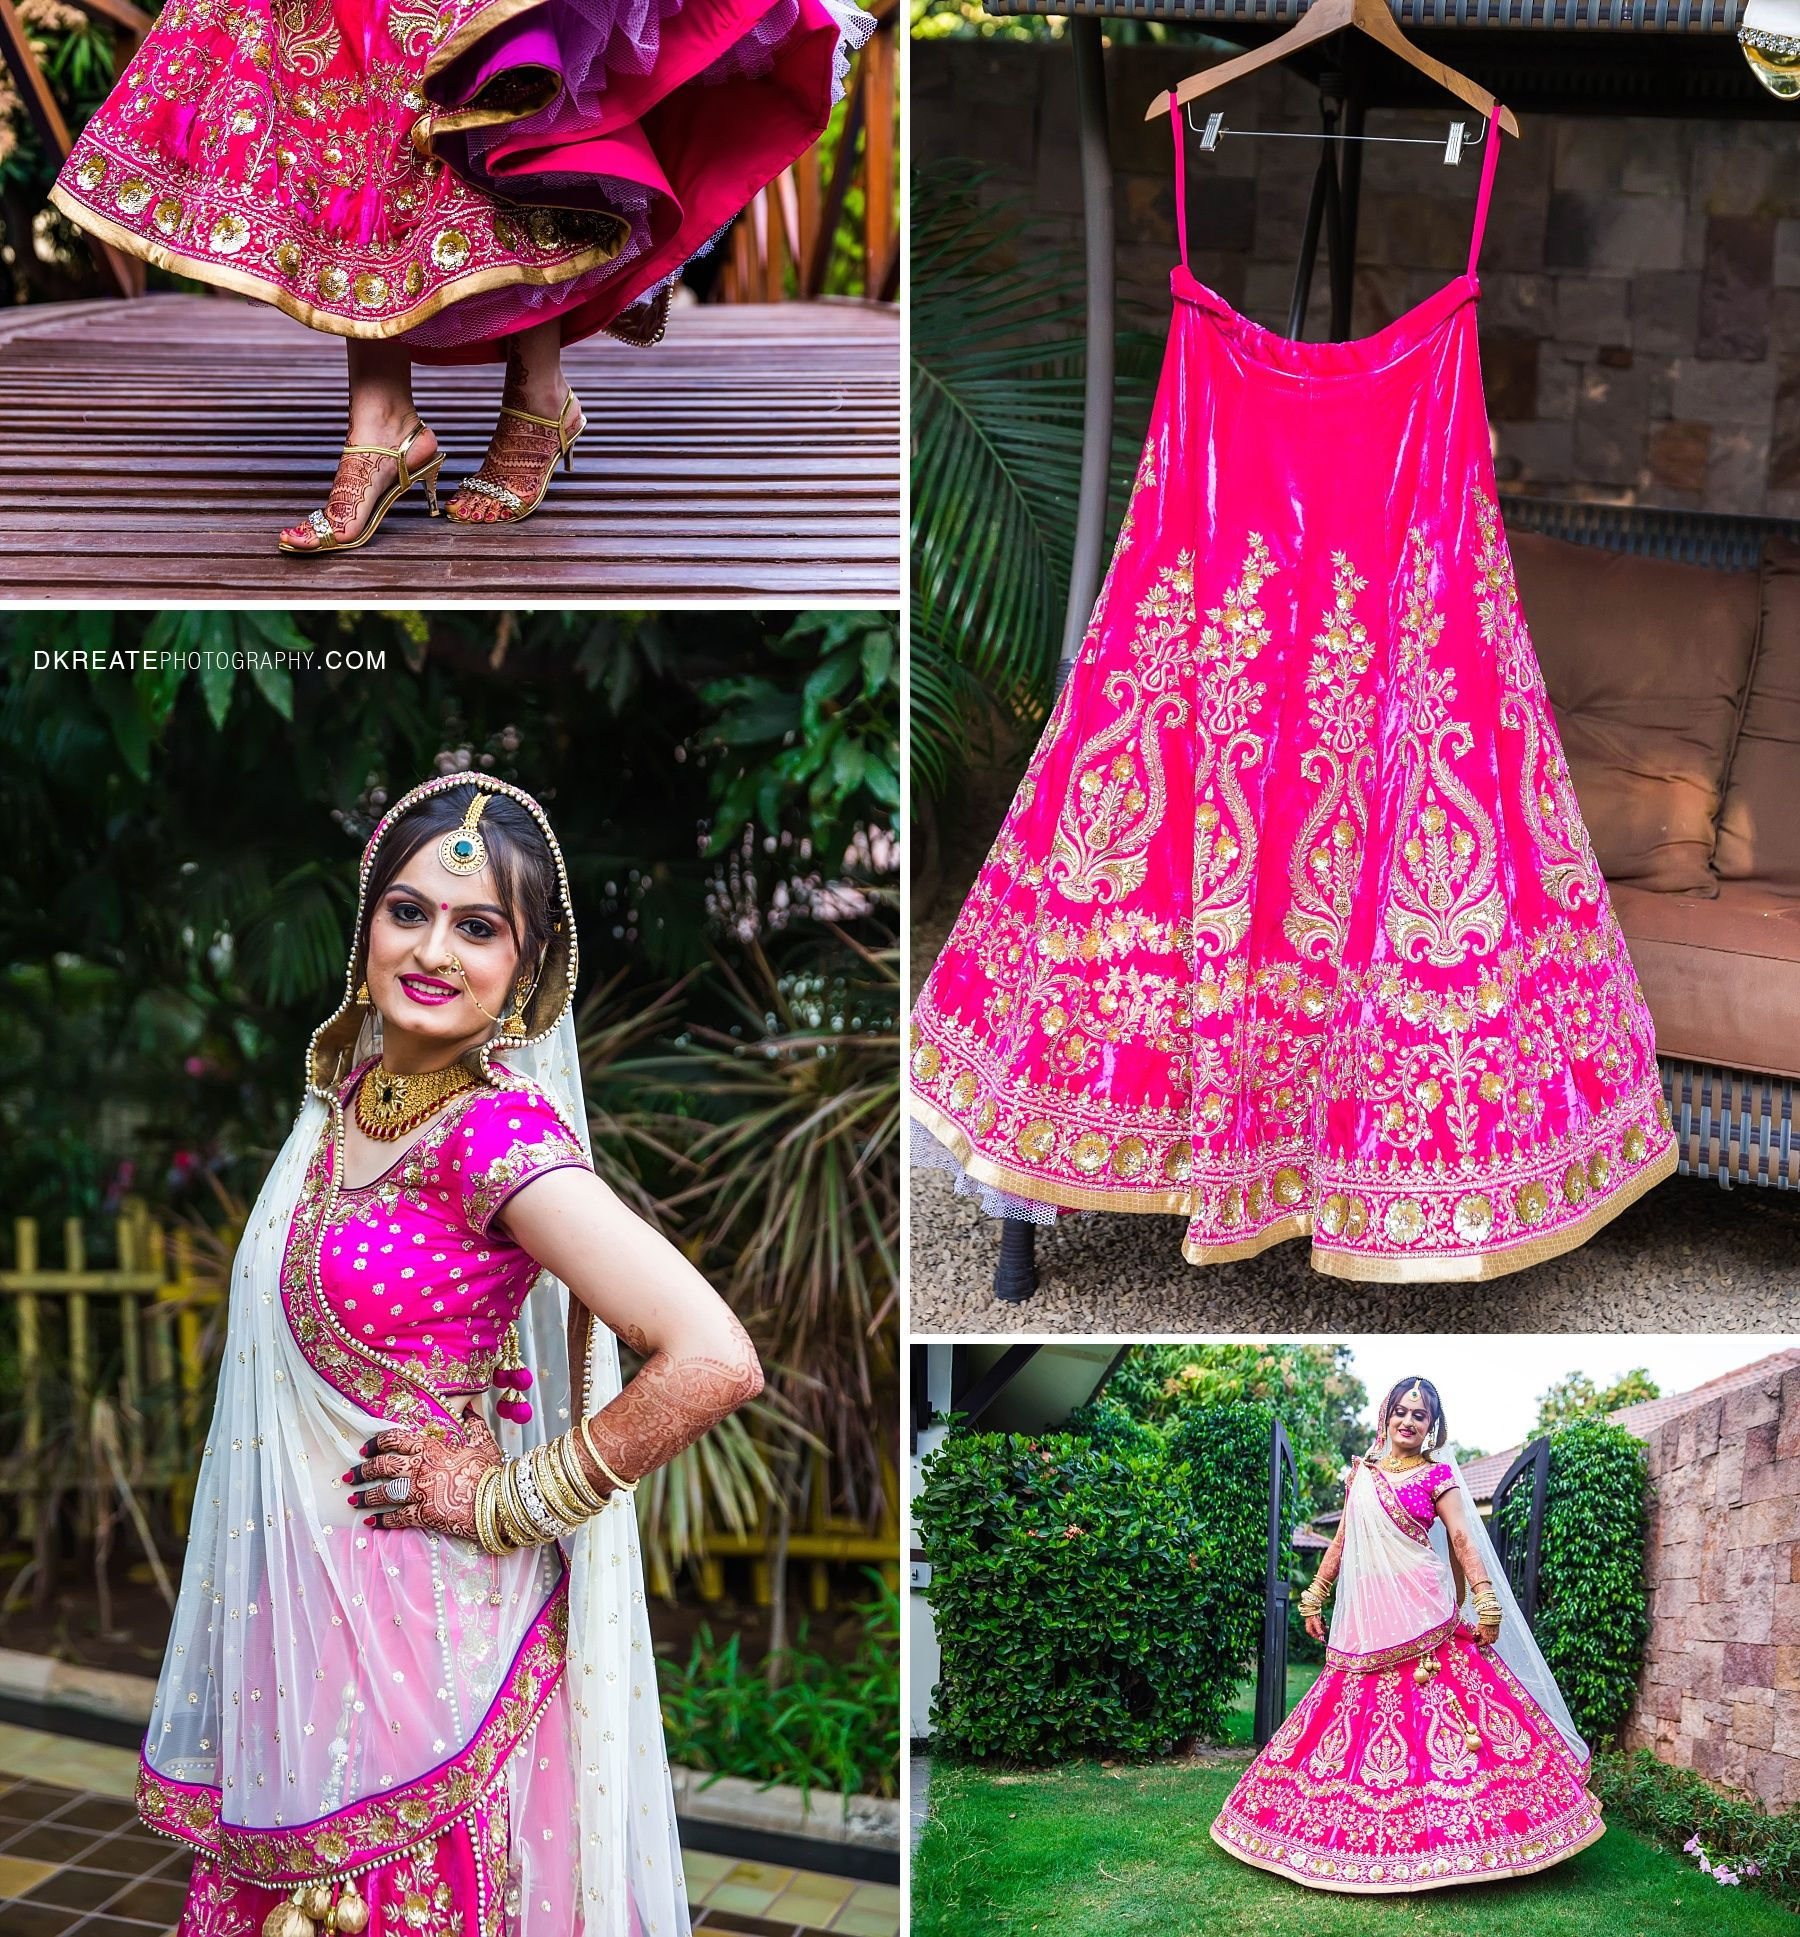 Indian Wedding Outfit Inspirations | DKreate Photography ...